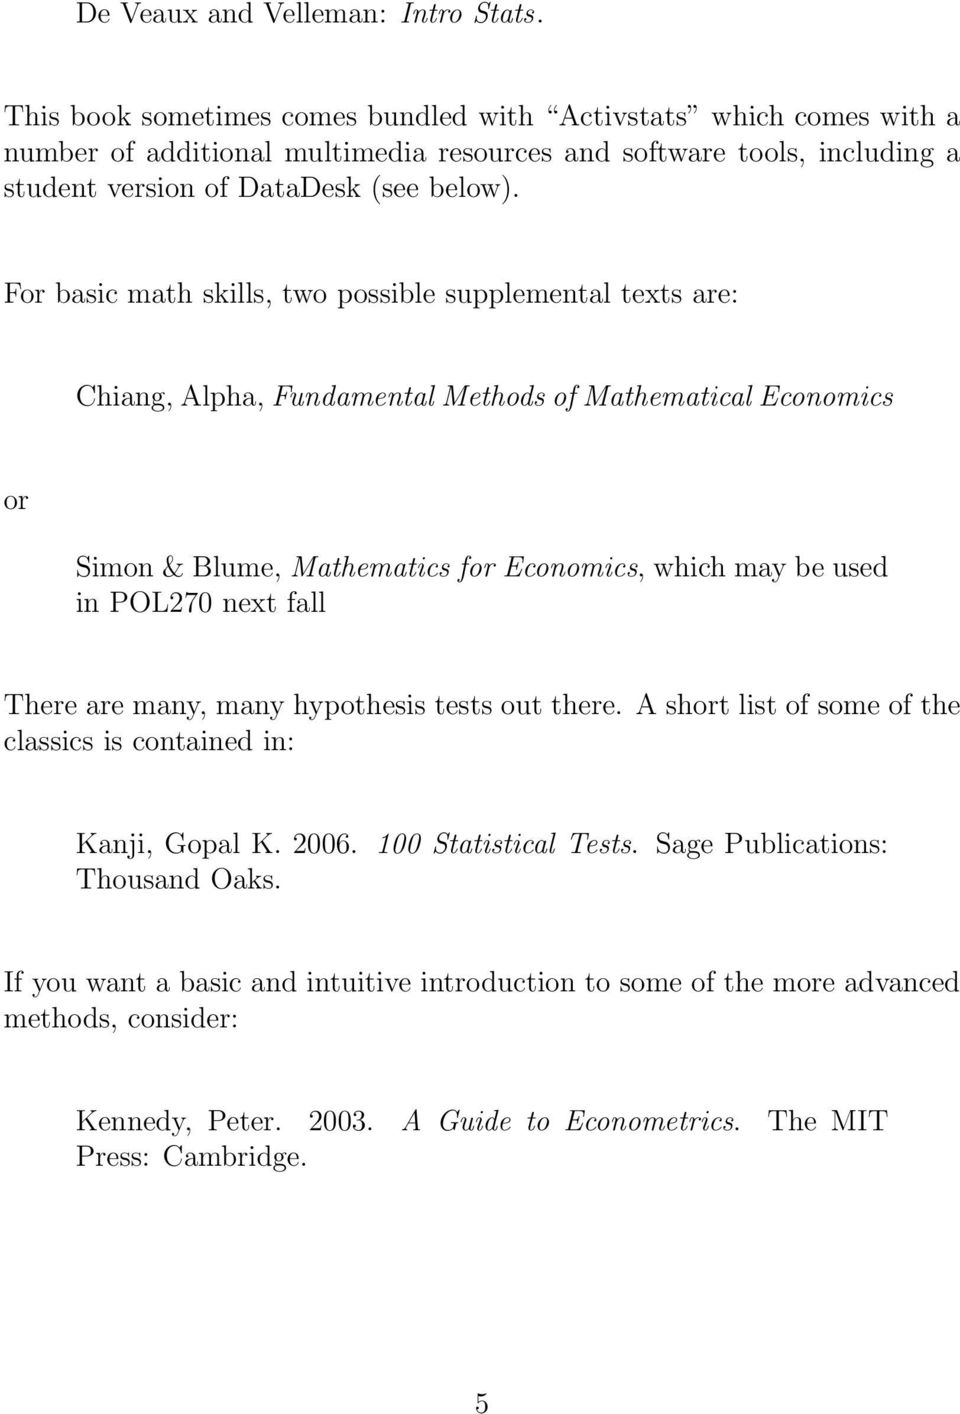 For basic math skills, two possible supplemental texts are: Chiang, Alpha, Fundamental Methods of Mathematical Economics or Simon & Blume, Mathematics for Economics, which may be used in POL270